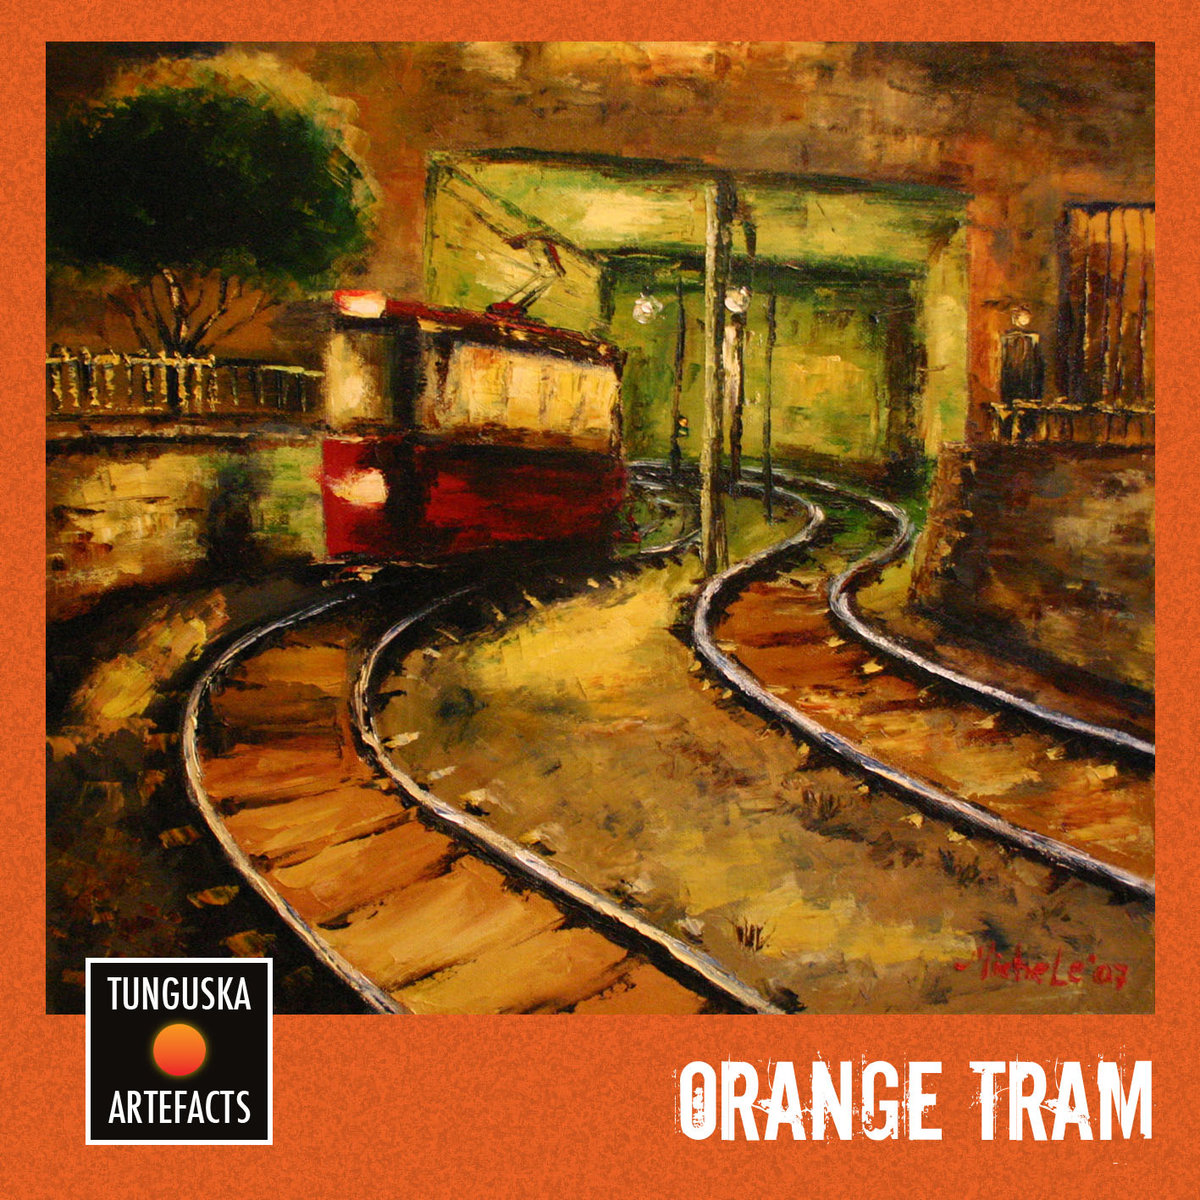 Pharmacy Orchestra - Epilogue @ 'Tunguska Artefacts - Orange Tram' album (electronic, ambient)